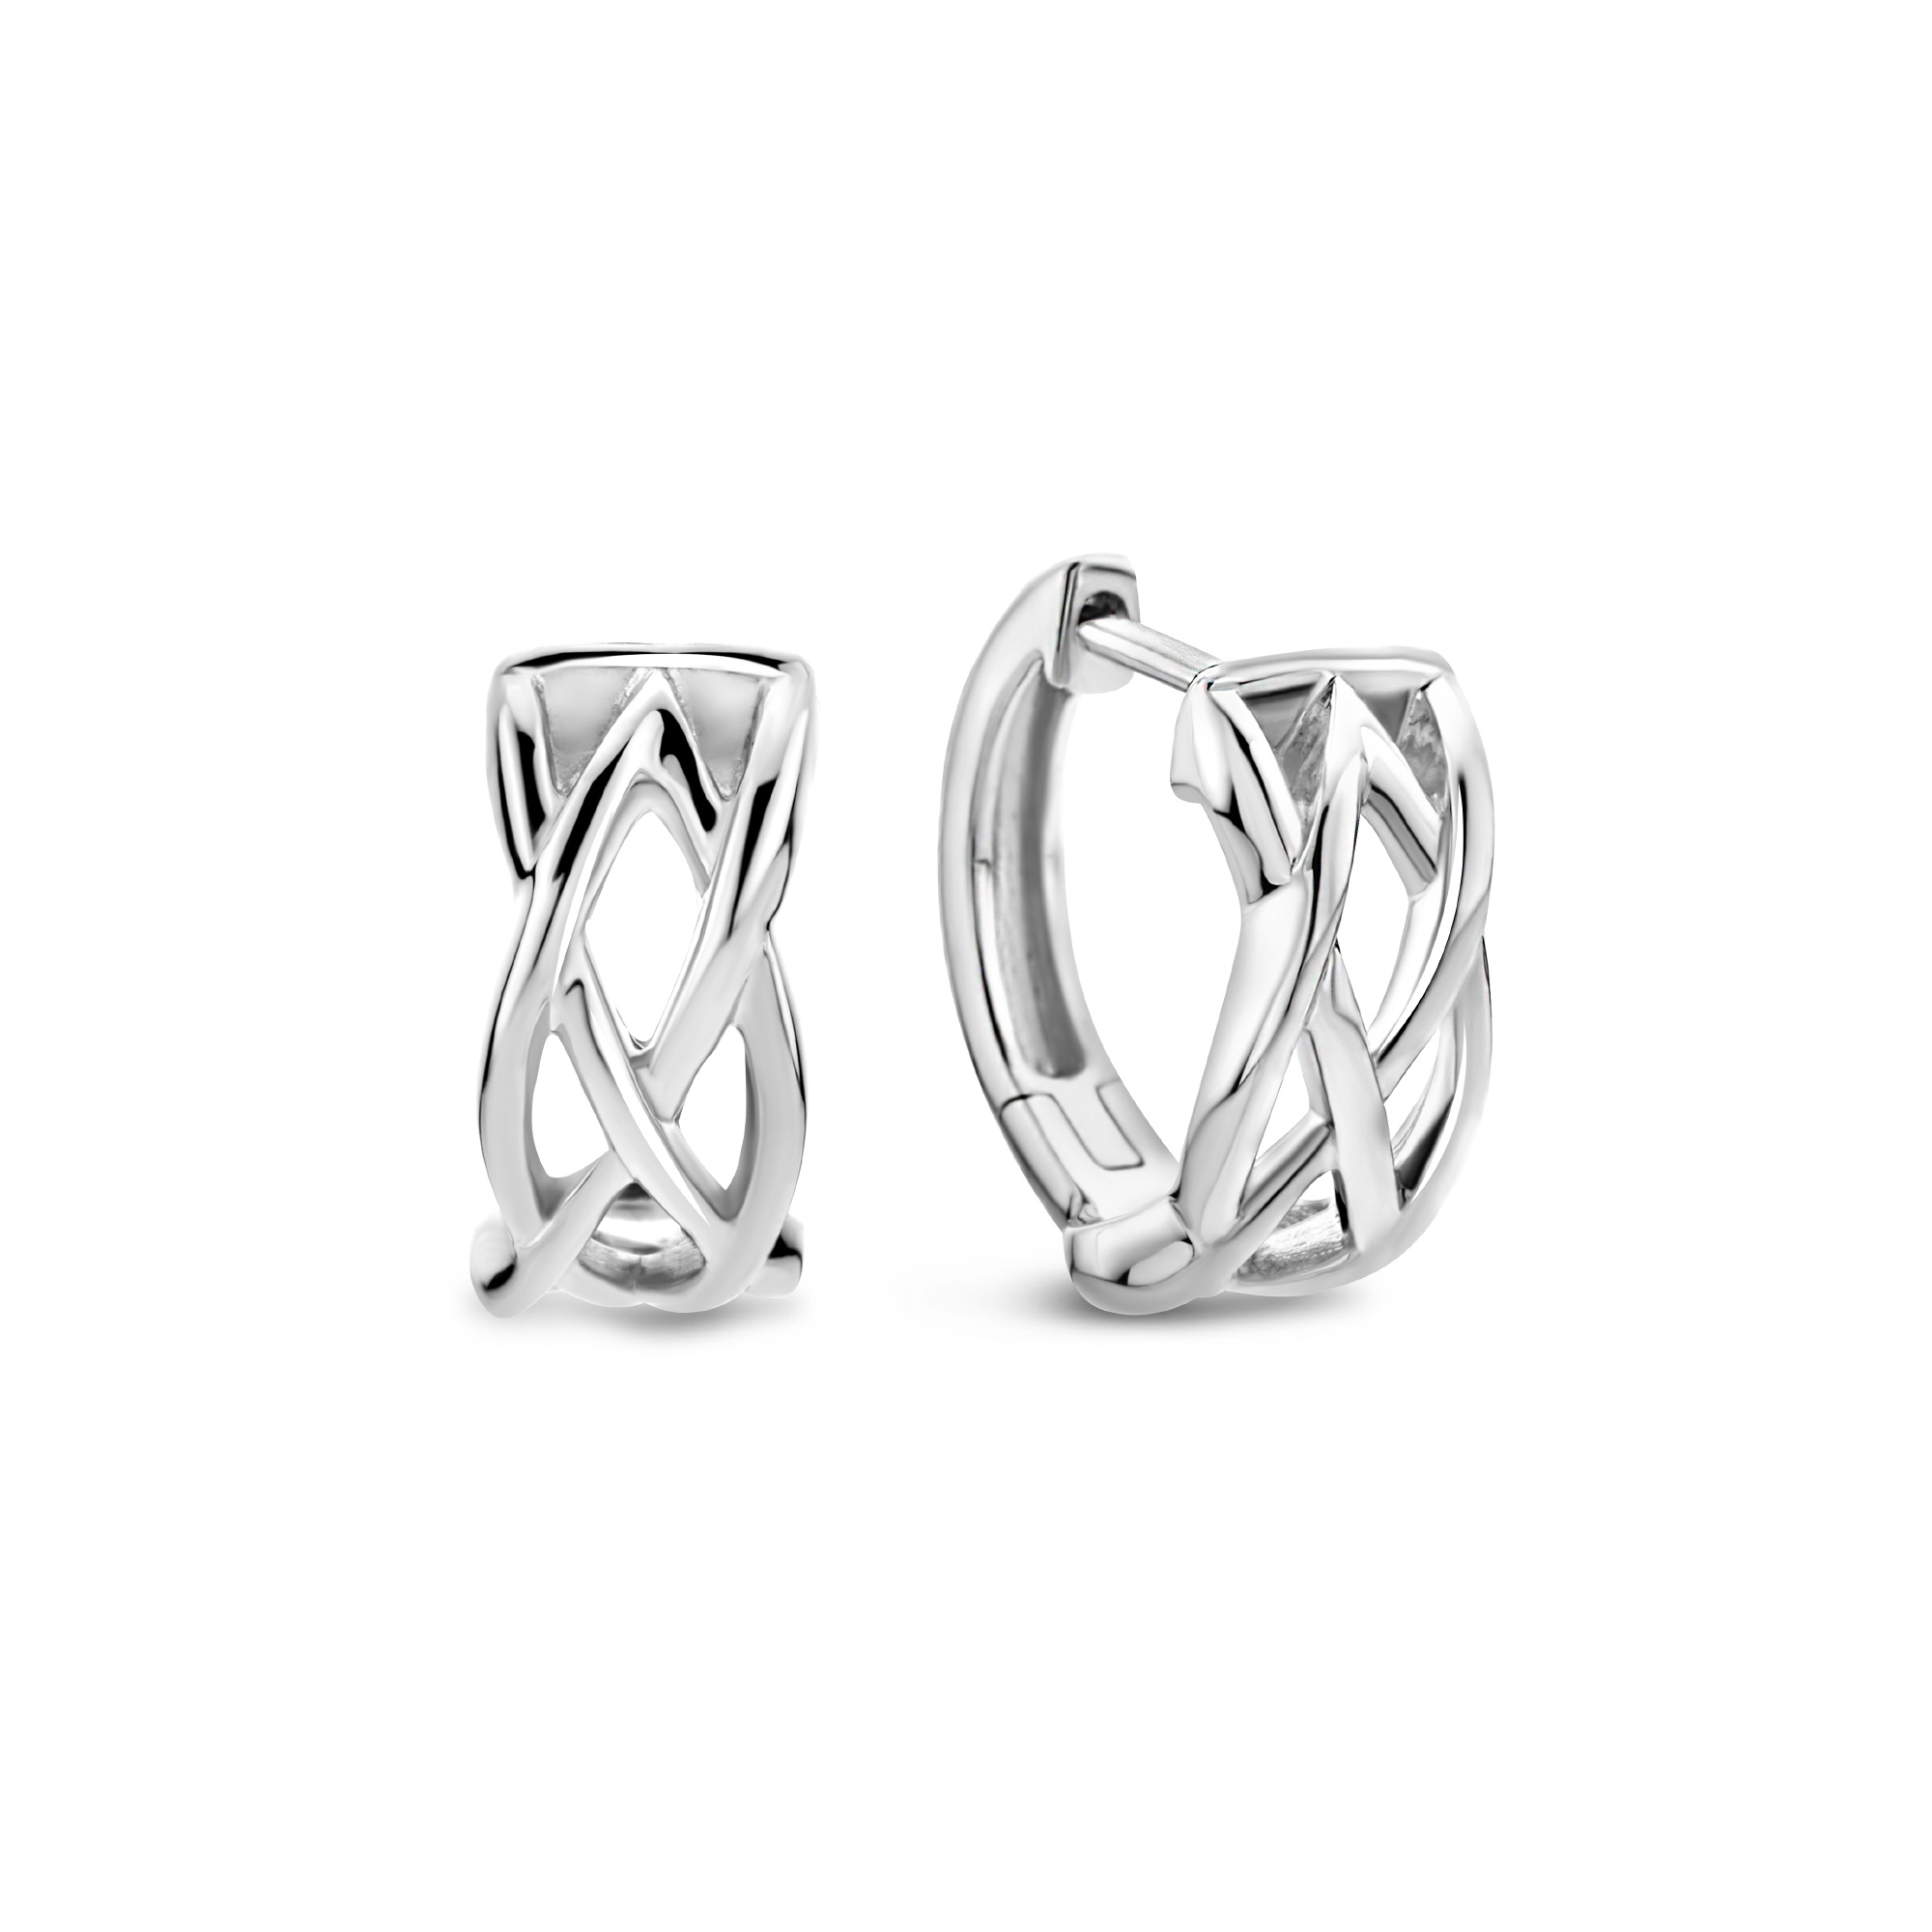 Selected Jewels Emma Vieve creoler i 925 sterling silver